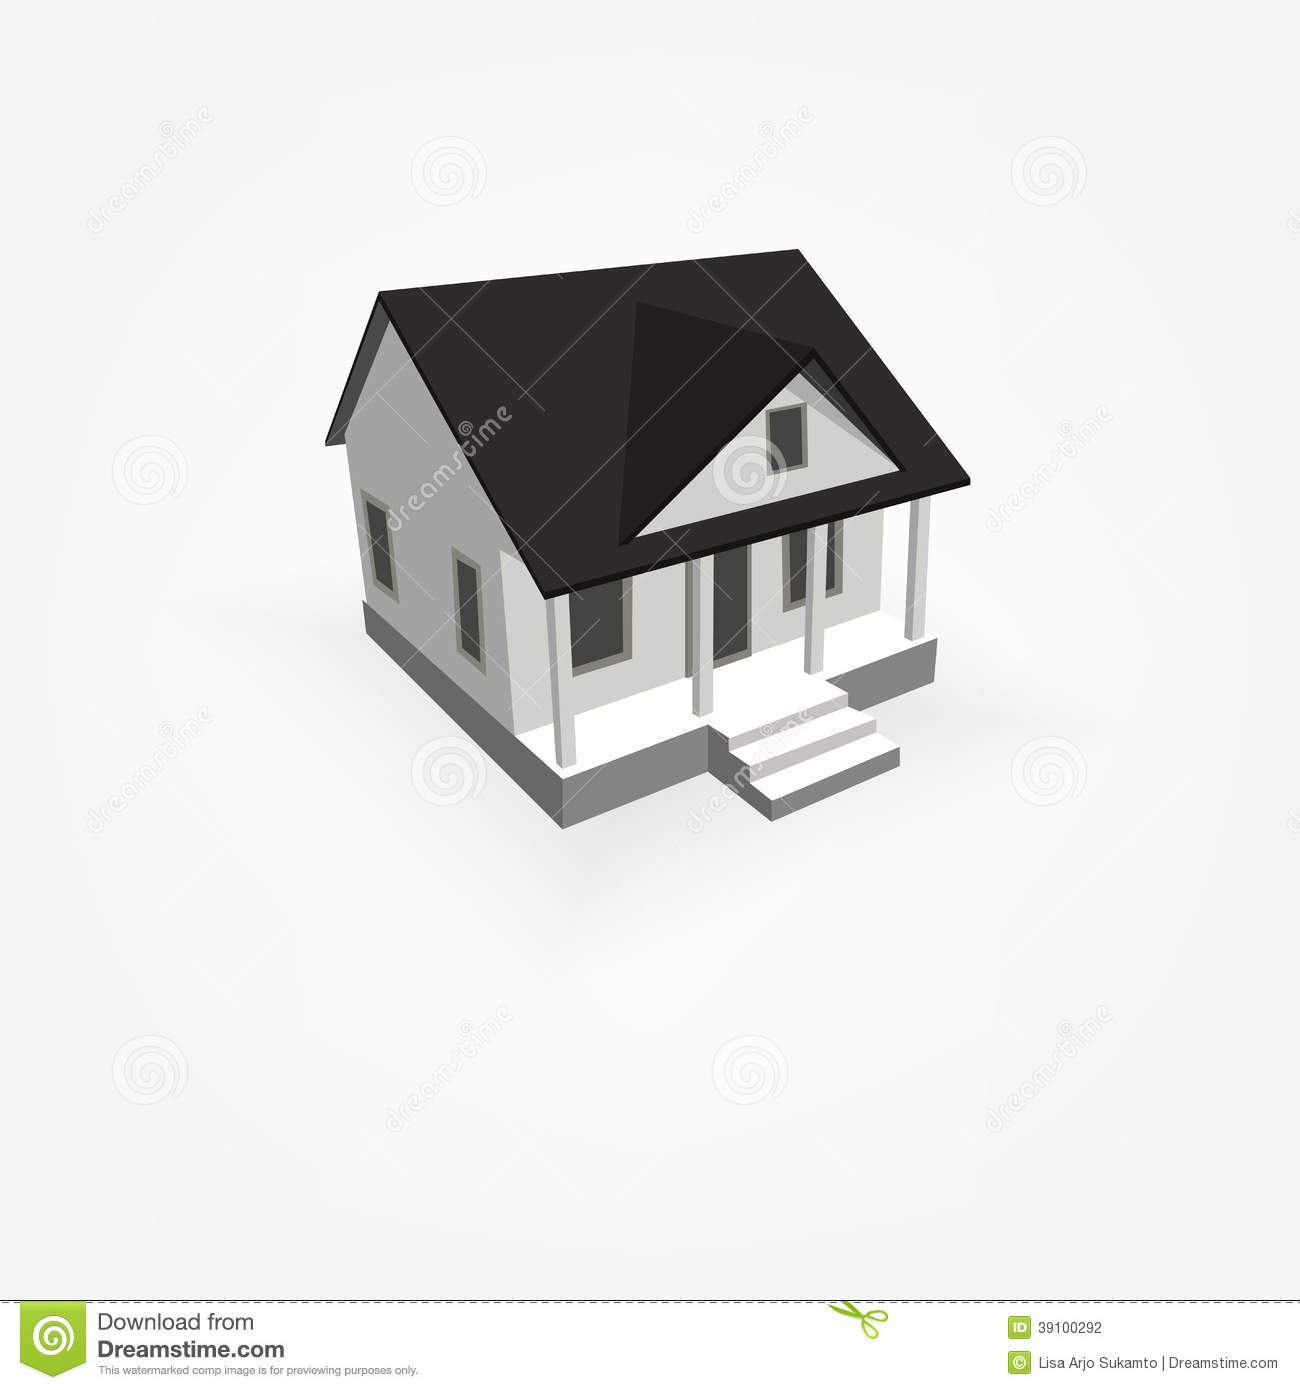 3D Simple House Stock Vector - Image: 39100292